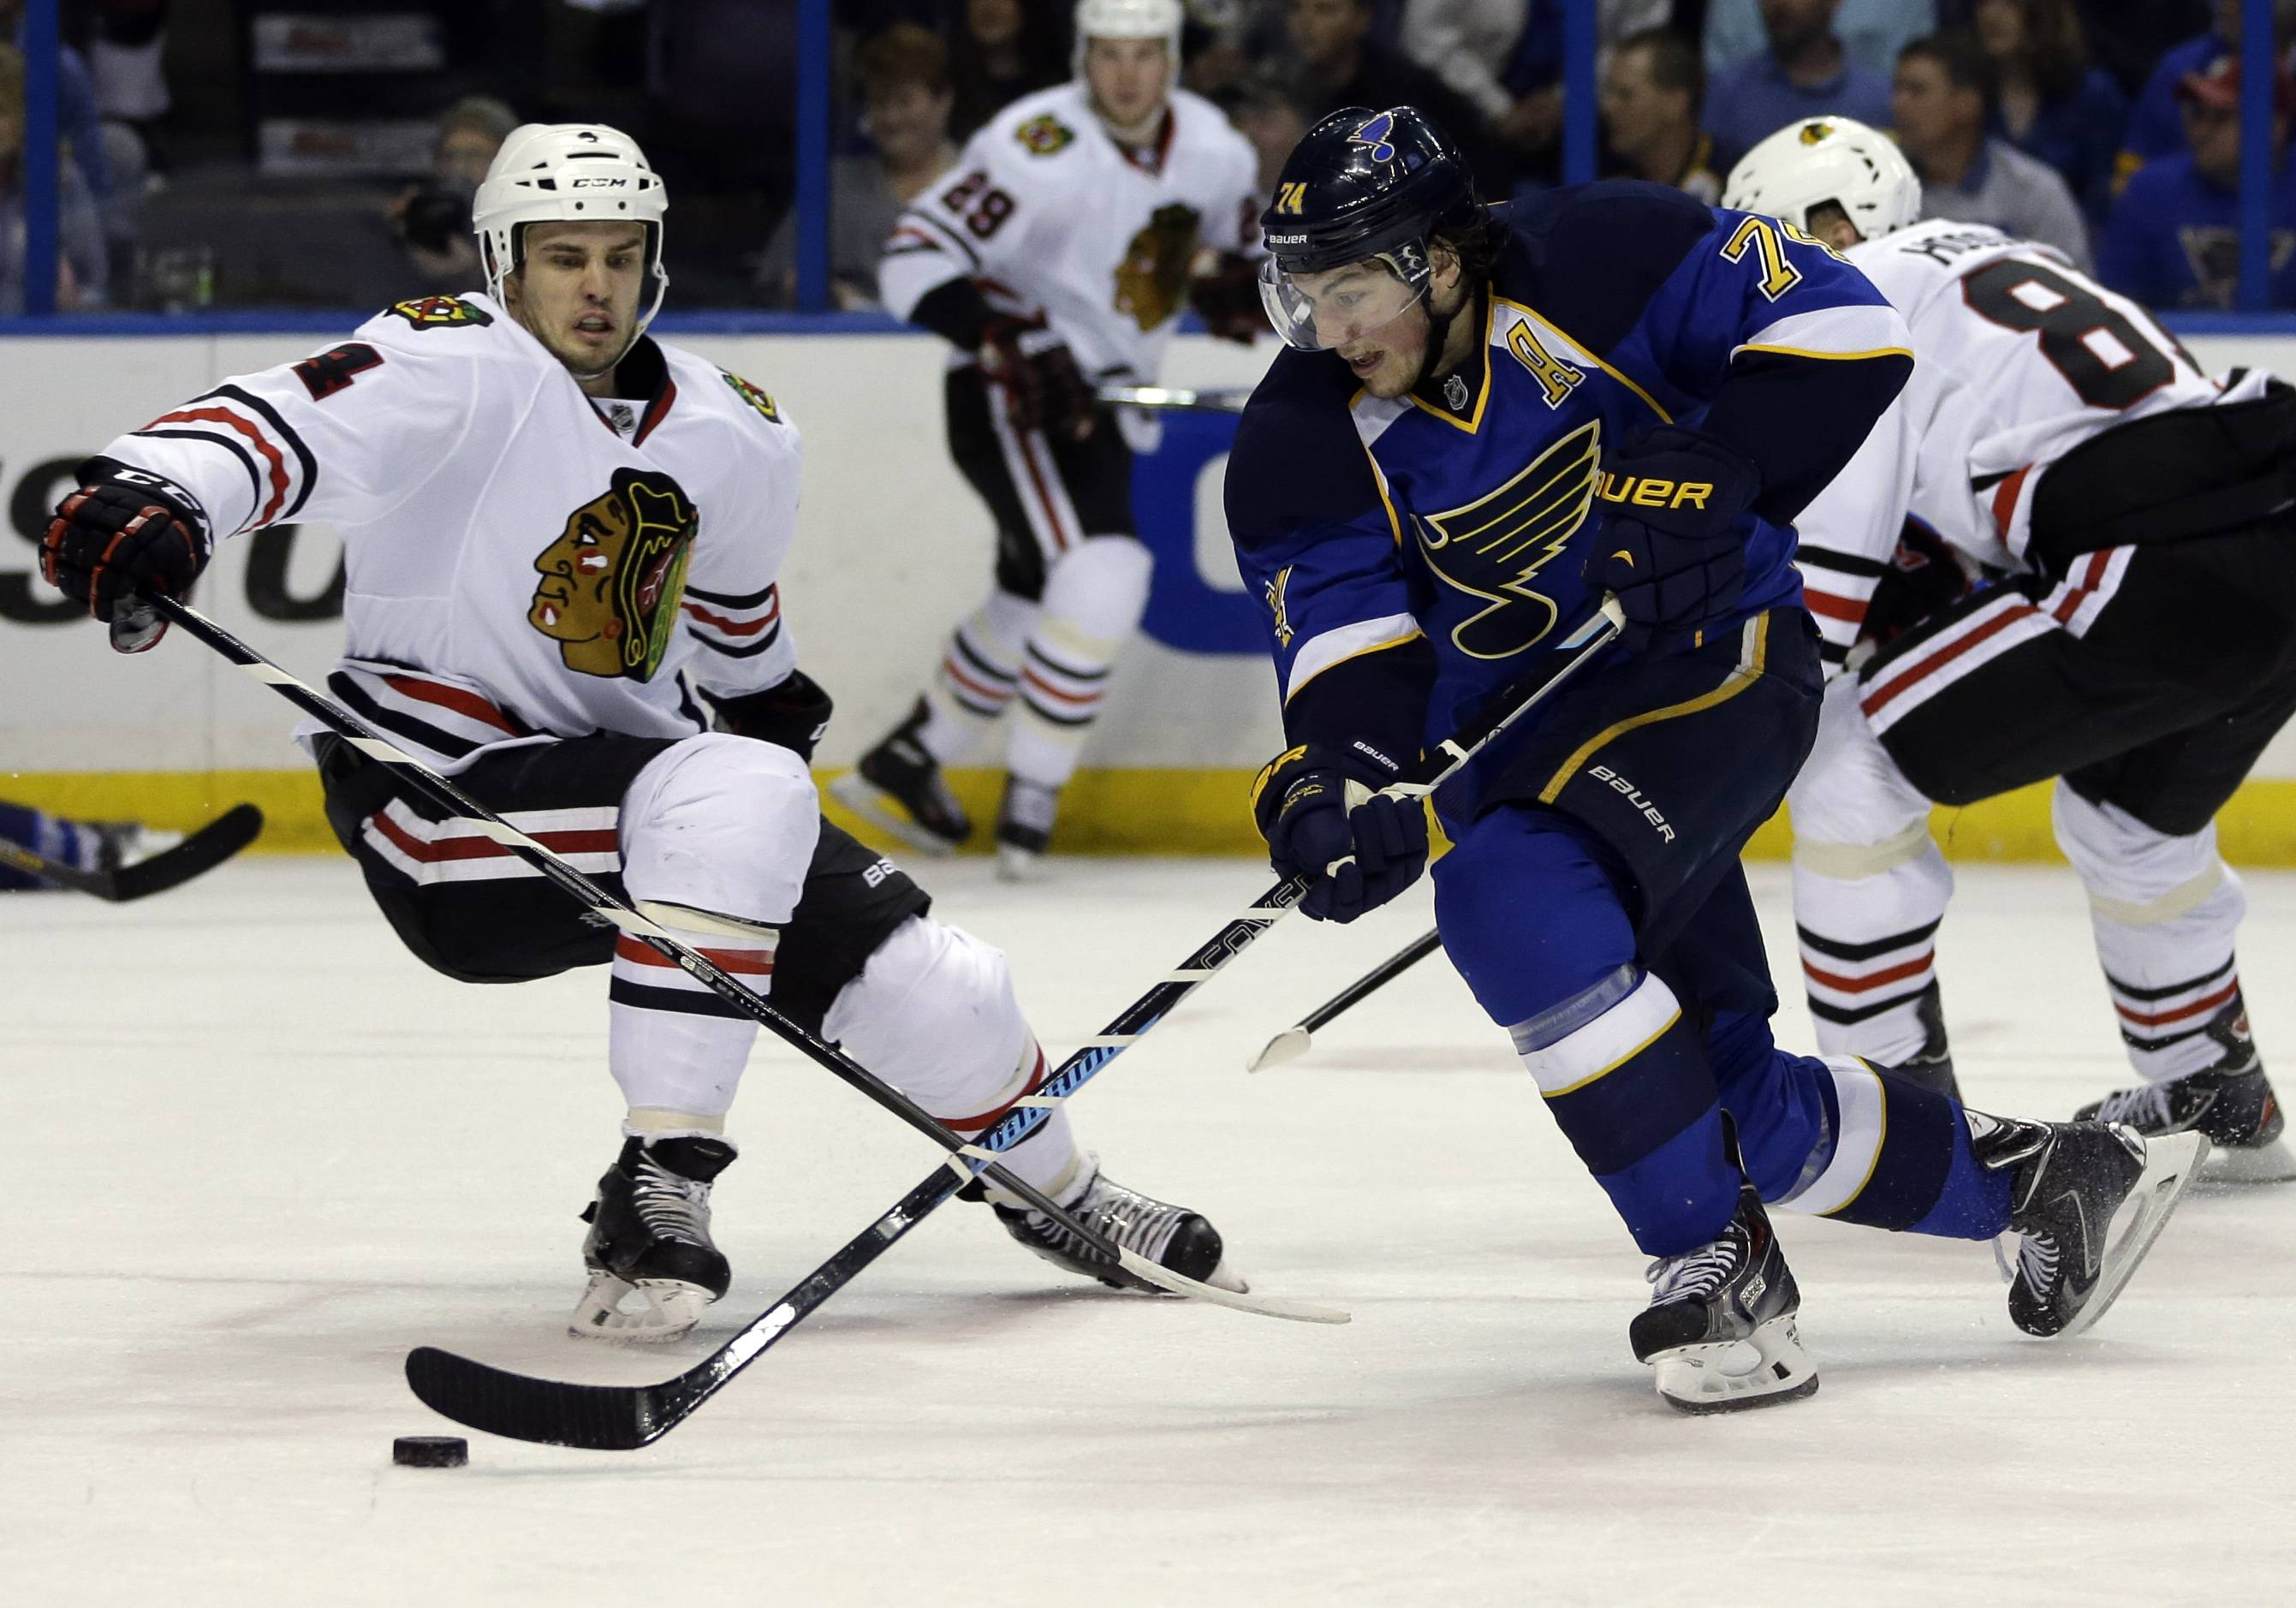 St. Louis Blues' T.J. Oshie, right, slips past Chicago Blackhawks' Niklas Hjalmarsson, of Sweden, on his way to score during the second period.